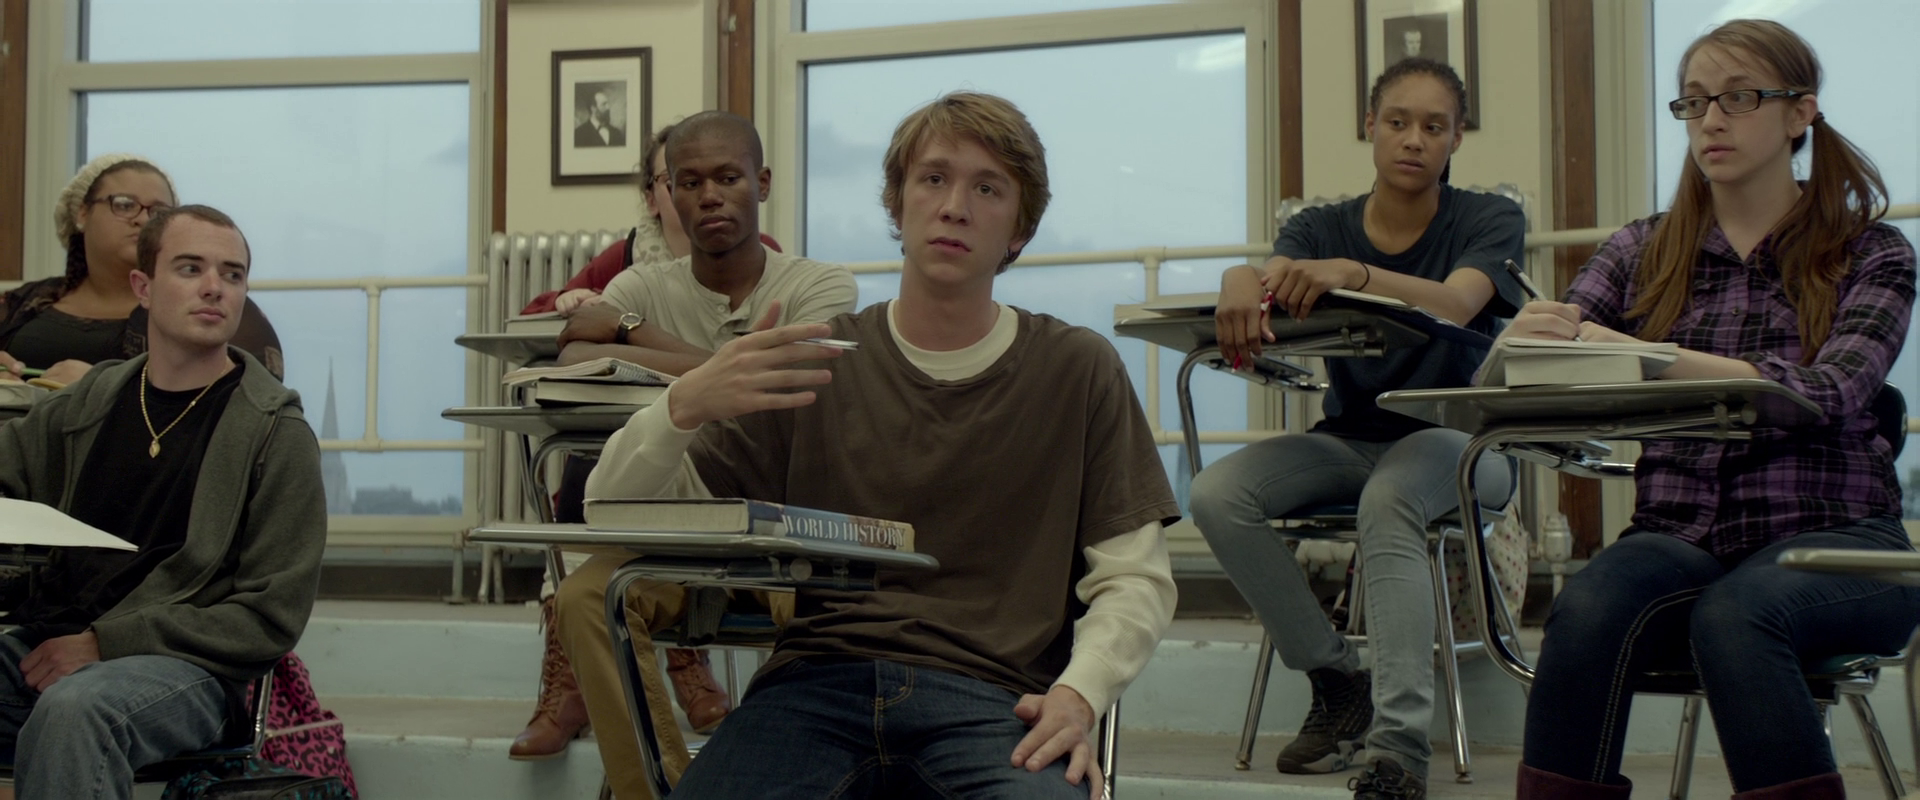 Ben, Earl ve Ölen Kız - Me, Earl and the Dying Girl 2015 (1080p BluRay) DUAL TR-EN - Full  HD Film indir